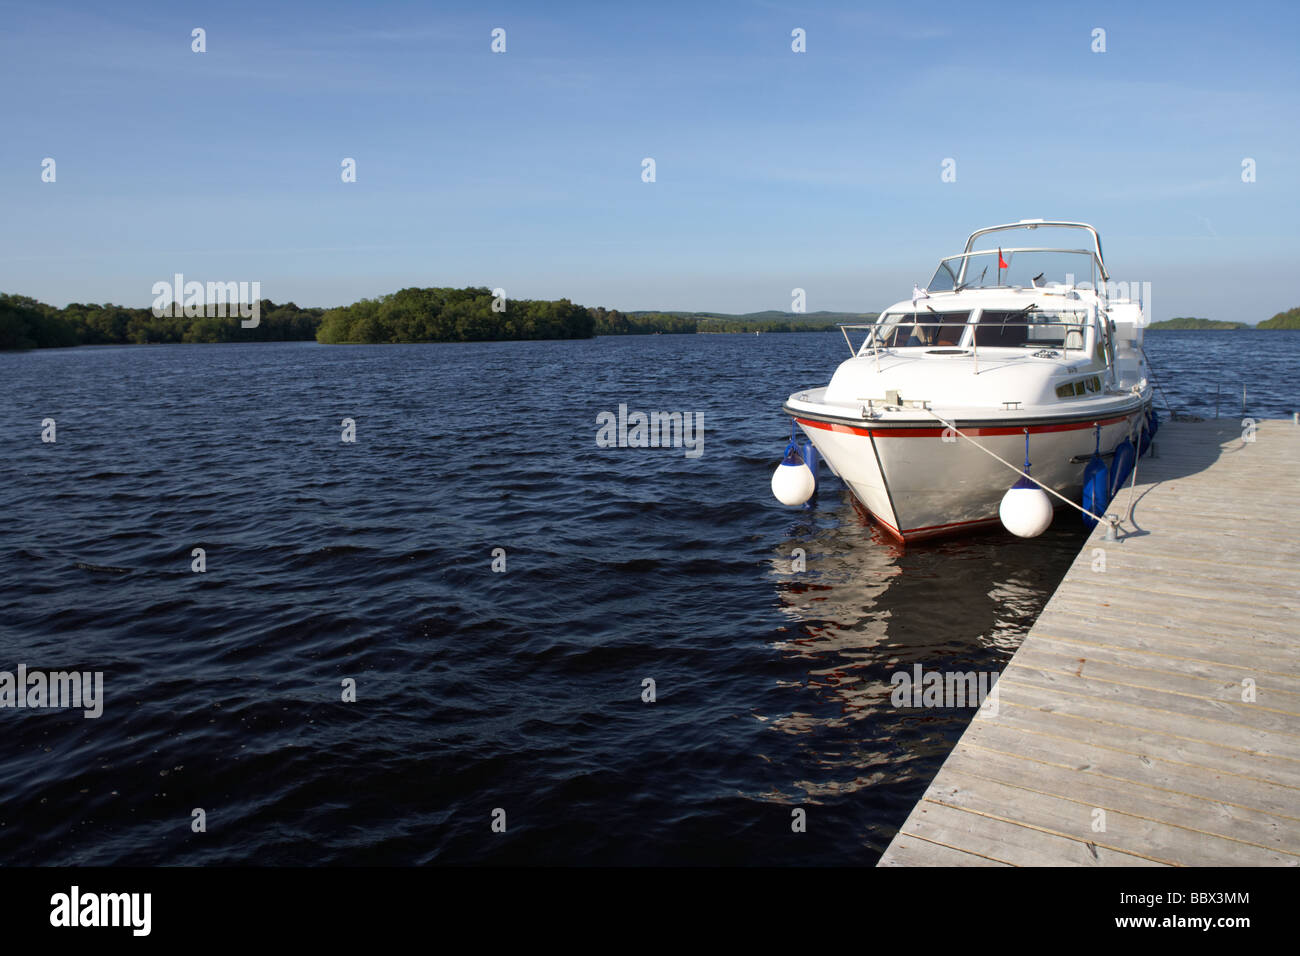 cabin cruiser moored at jetty on lower lough erne county fermanagh northern ireland uk - Stock Image